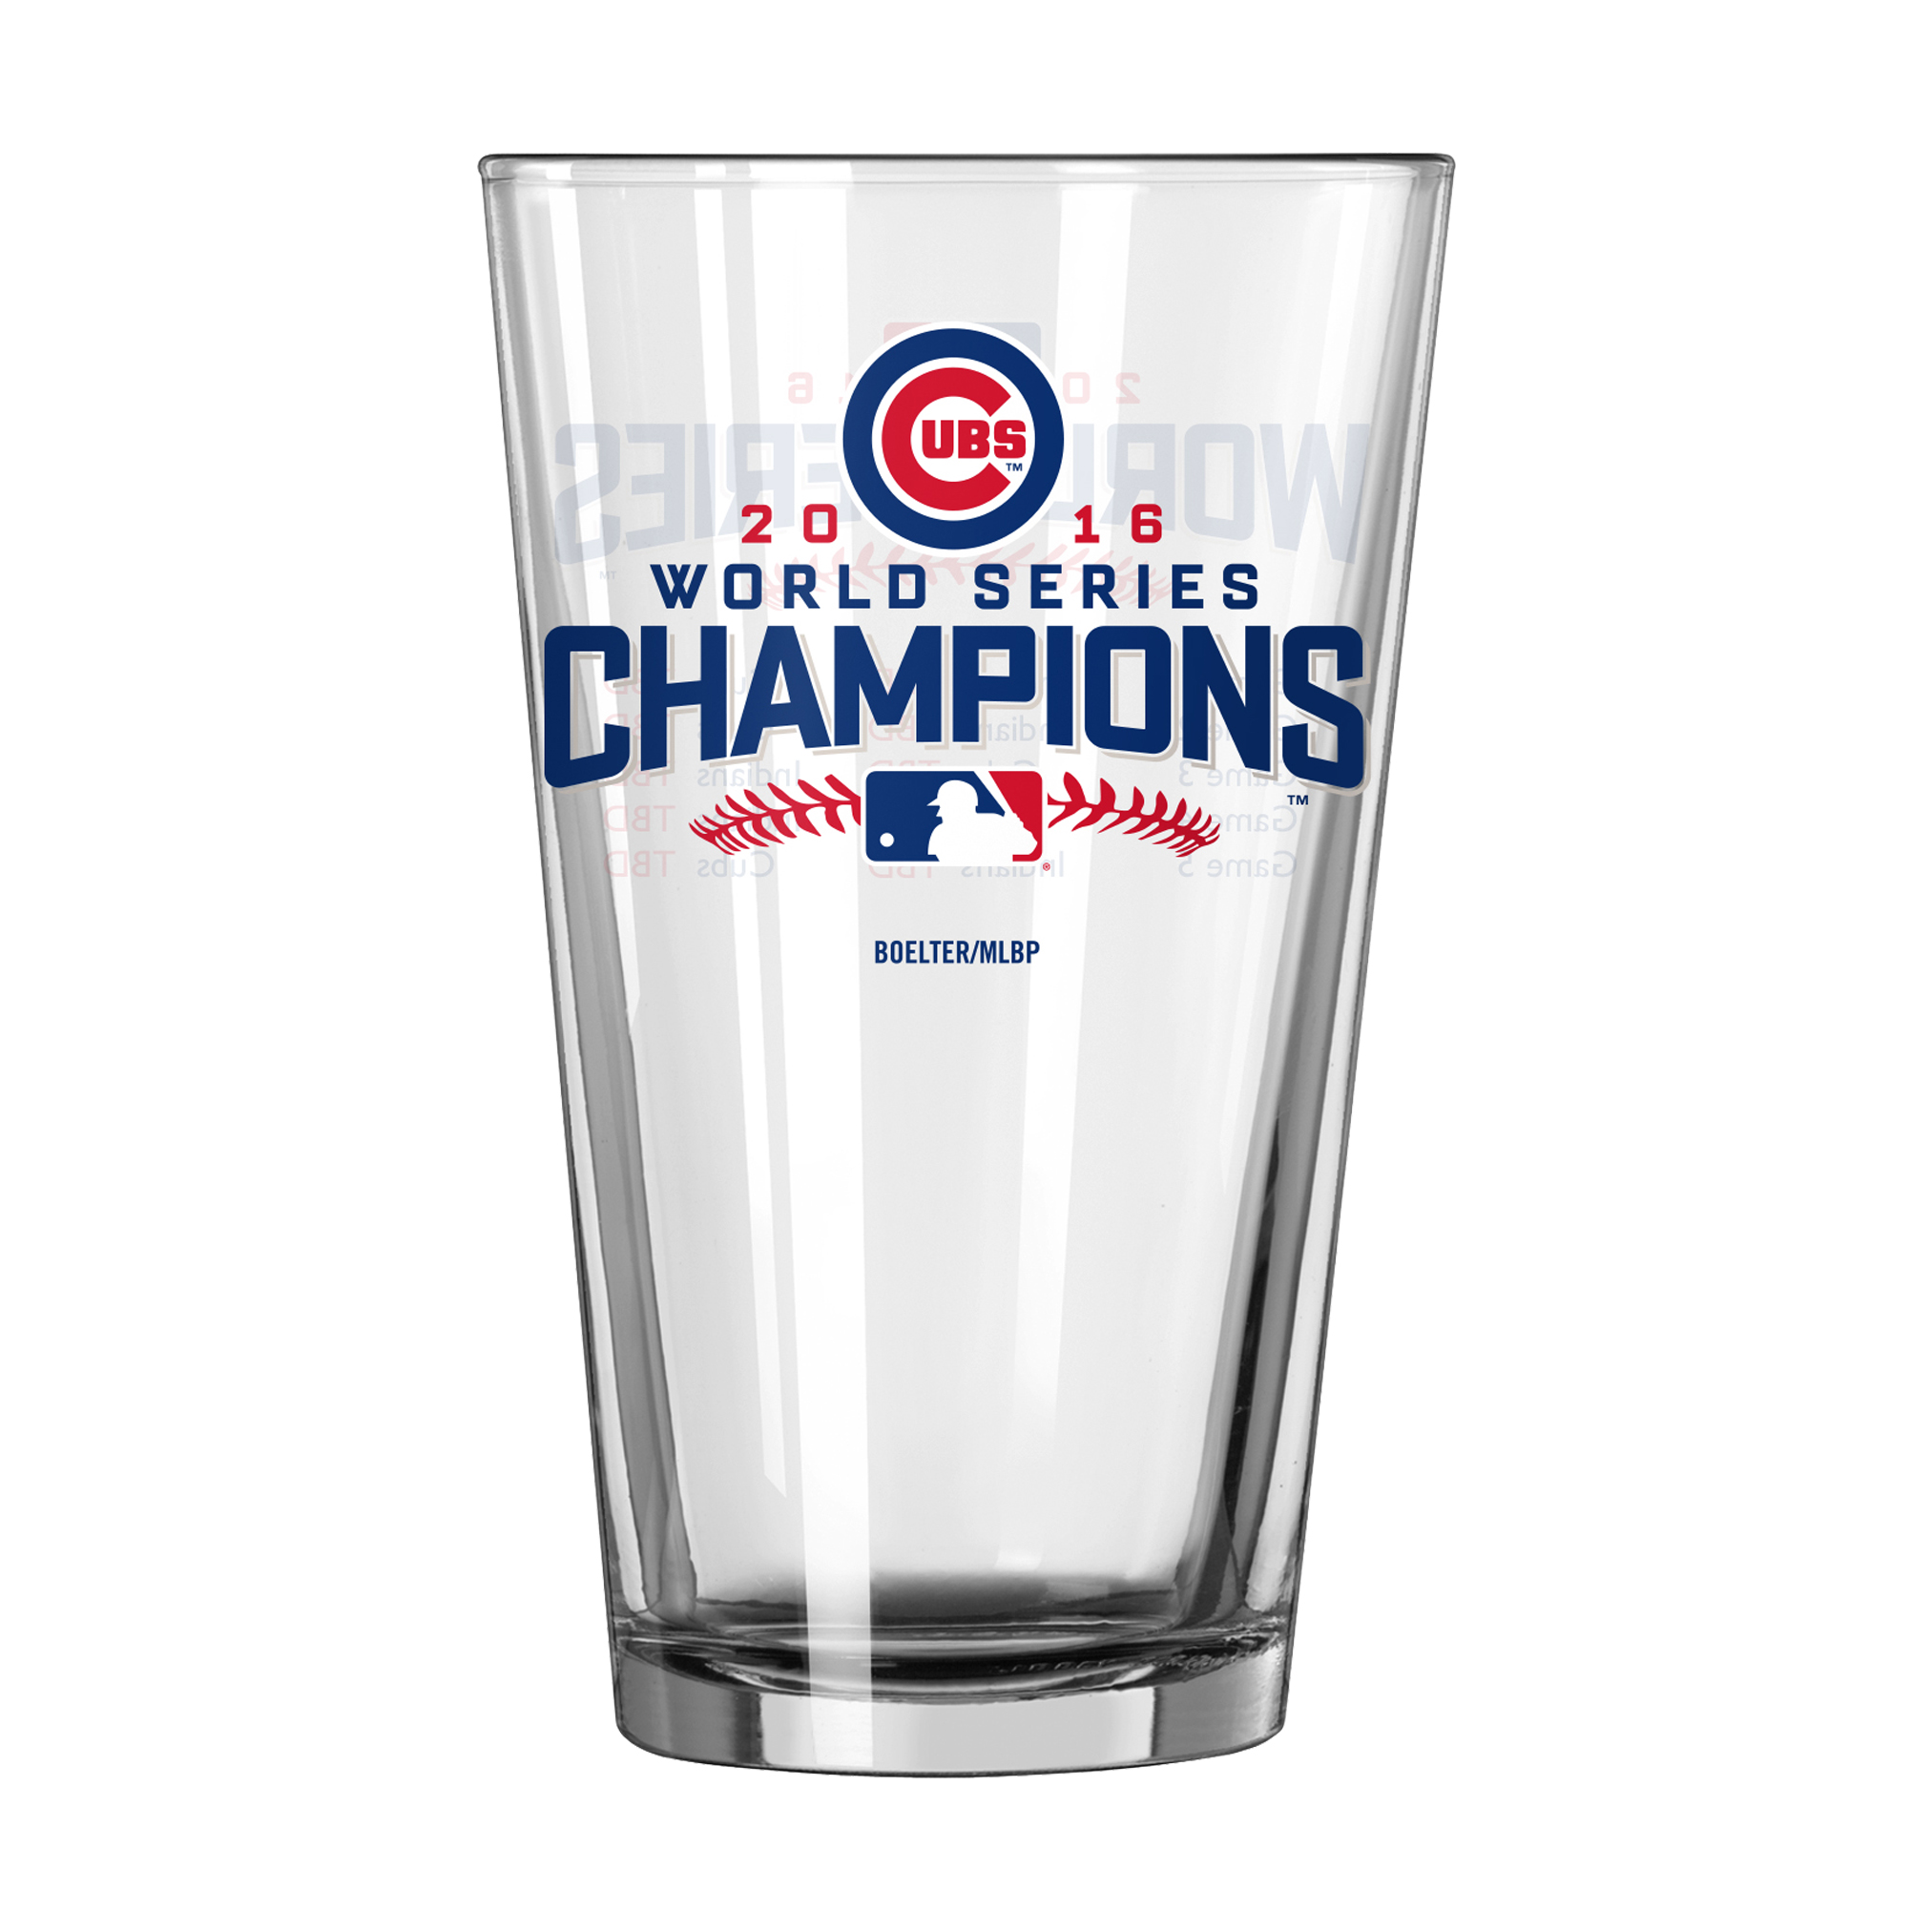 MLB 2016 World Series Game Summary Pint Glass – Chicago Cubs PartNumber: 046W009349960001P KsnValue: 9349960 MfgPartNumber: 467890